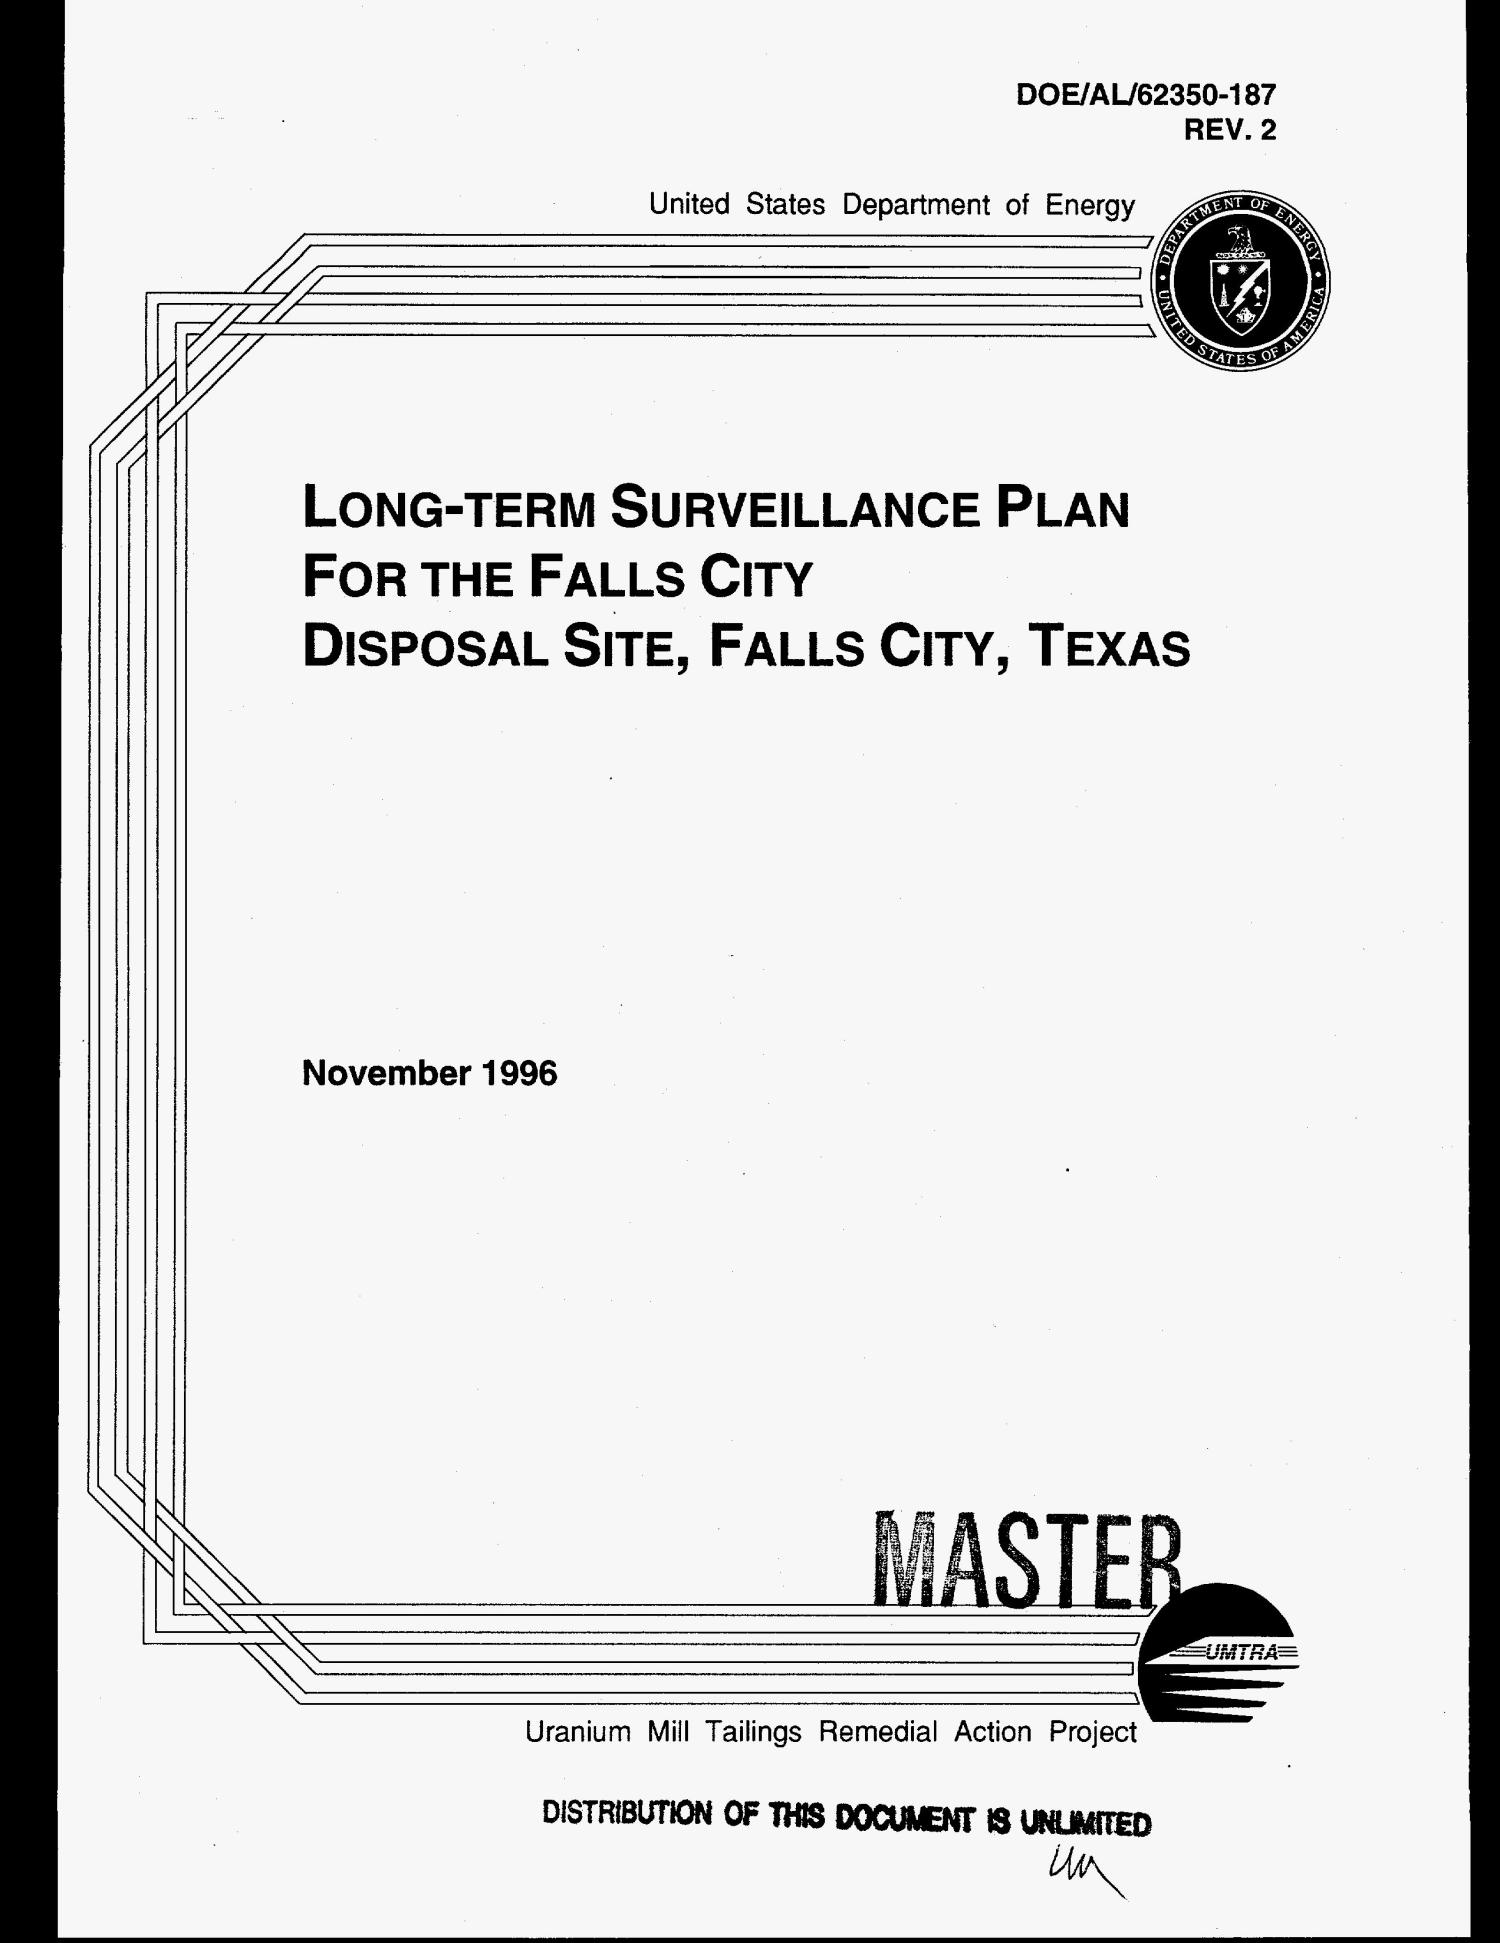 Long-term surveillance plan for the Falls City Disposal Site, Falls City, Texas. Revision 2                                                                                                      [Sequence #]: 1 of 45